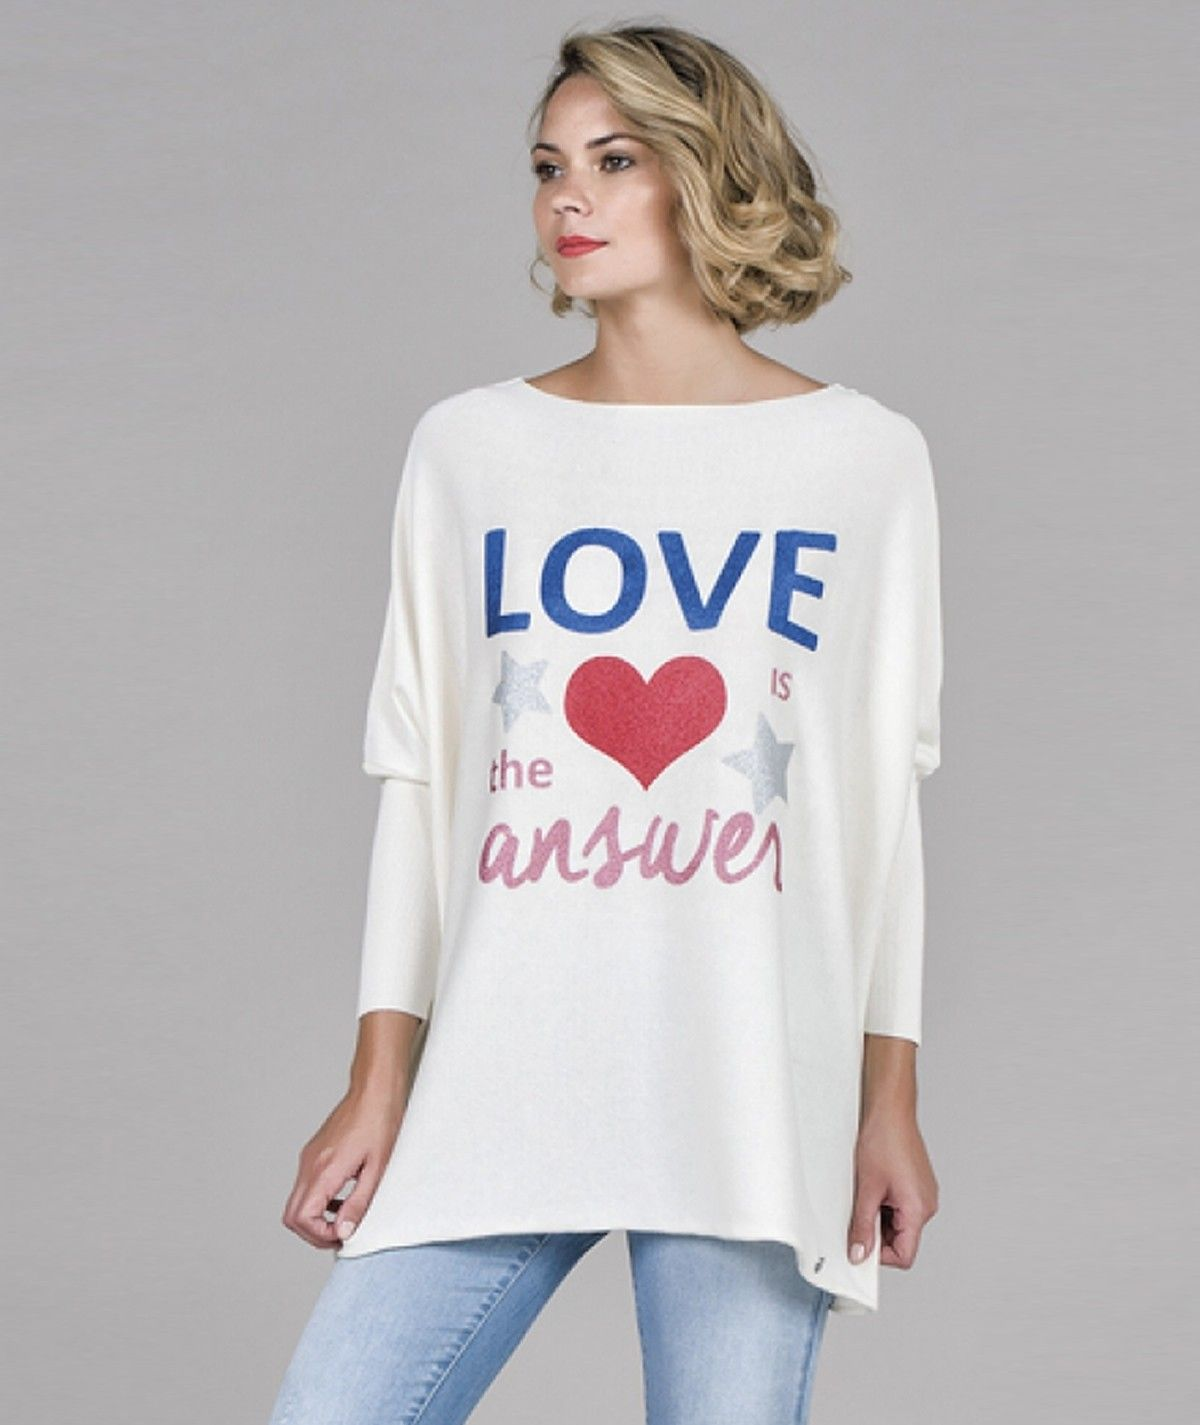 Camisola motivo love is the...